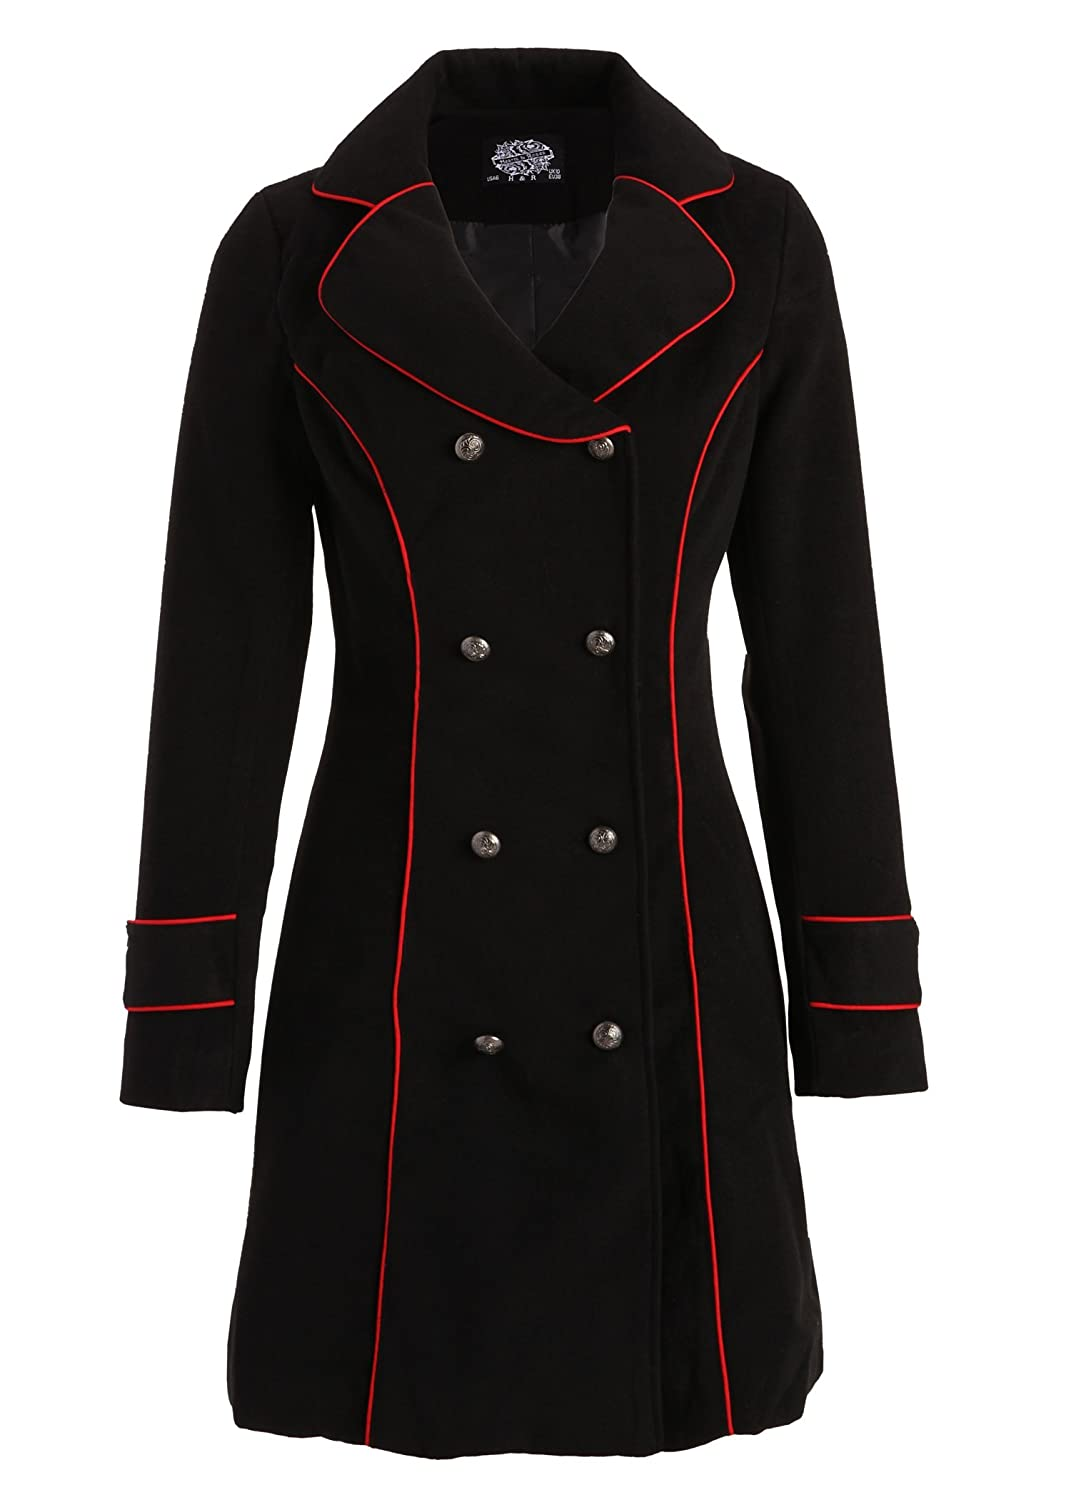 1960s Coats and Jackets Black Retro Vintage Military Winter Jacket Coat with Red Piping $79.90 AT vintagedancer.com